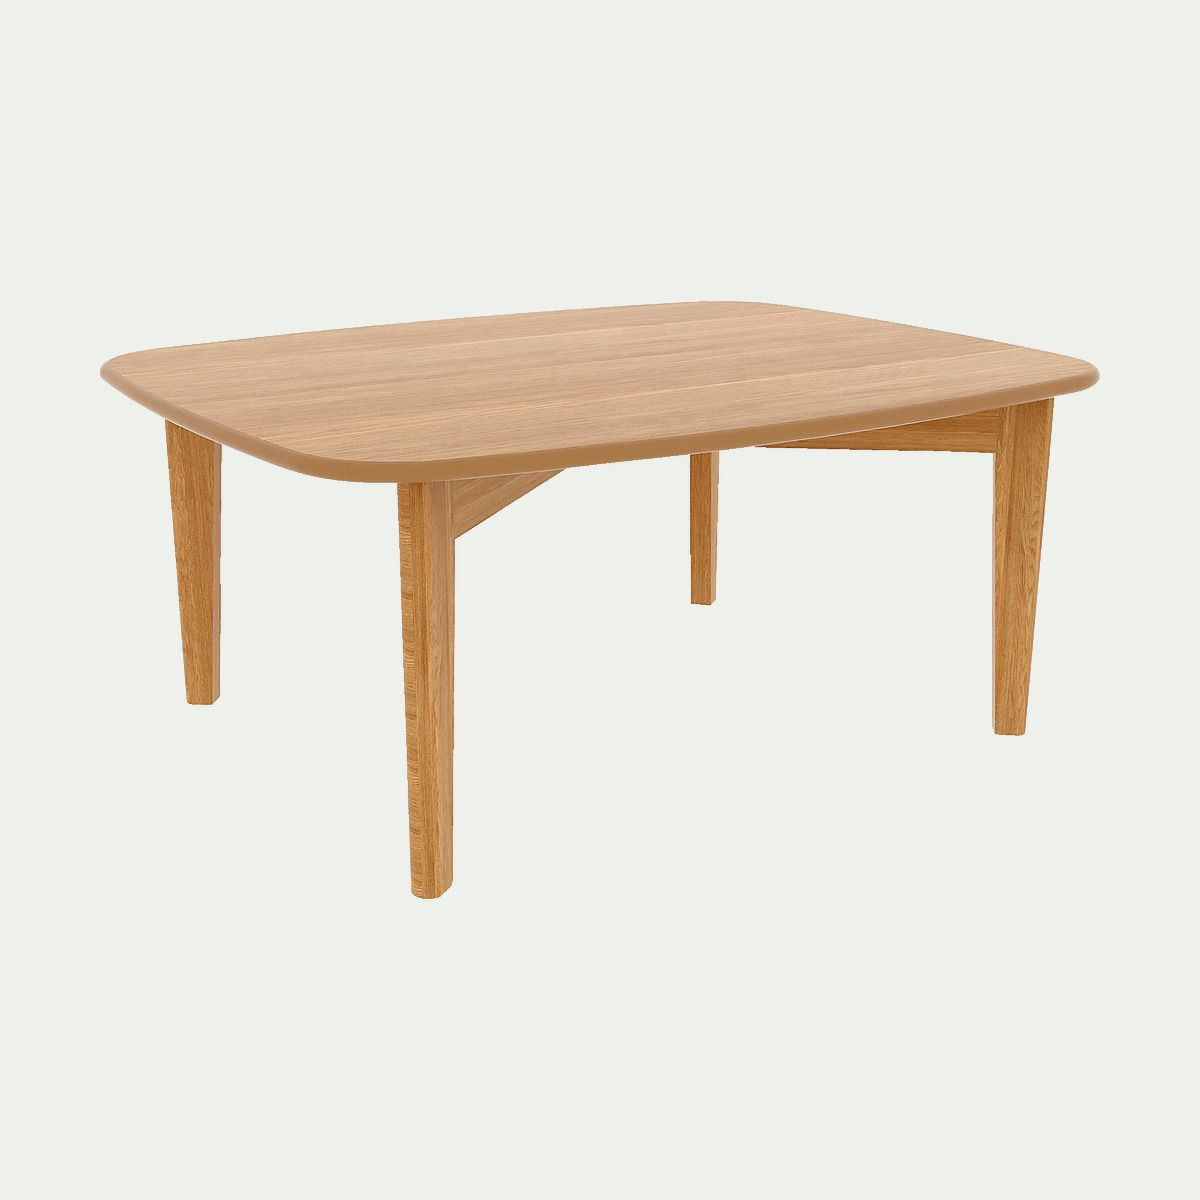 Table Basse Plaquee Chene Alinea Table Basse Table Basse